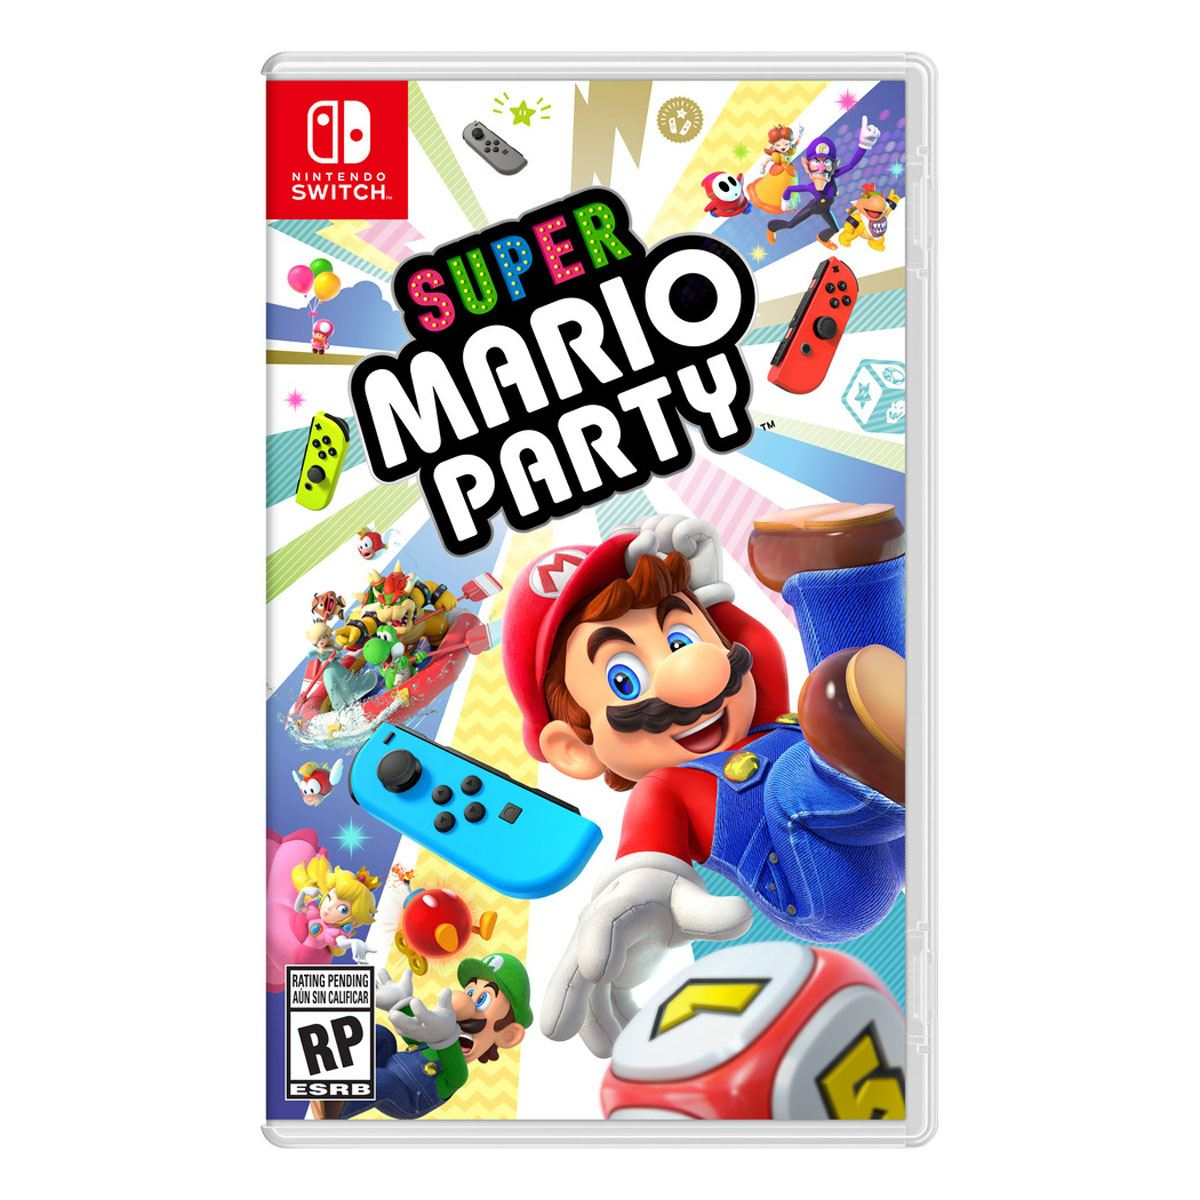 NSW Super Mario Party